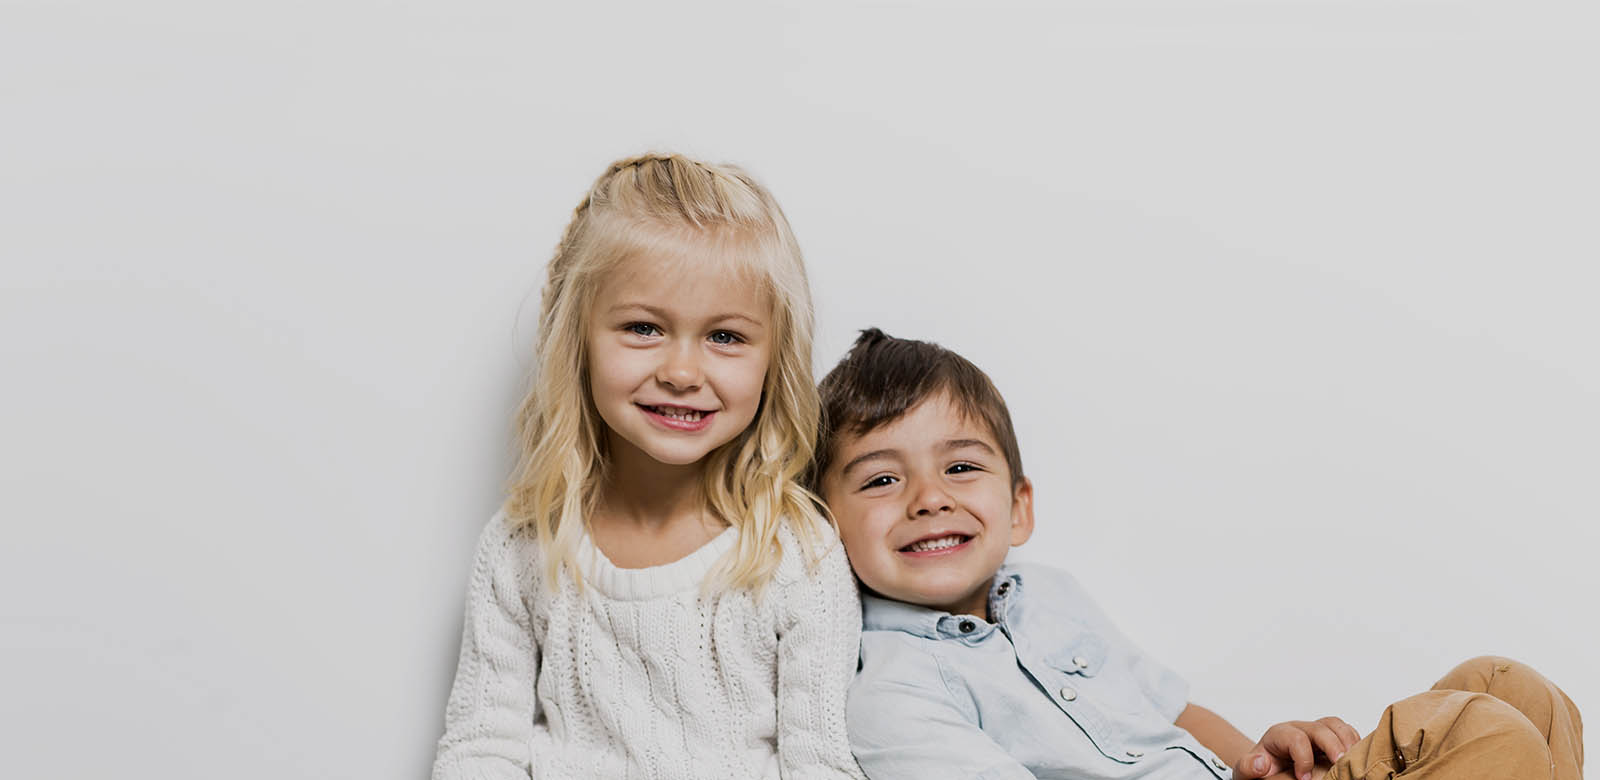 young girl and boy smiling